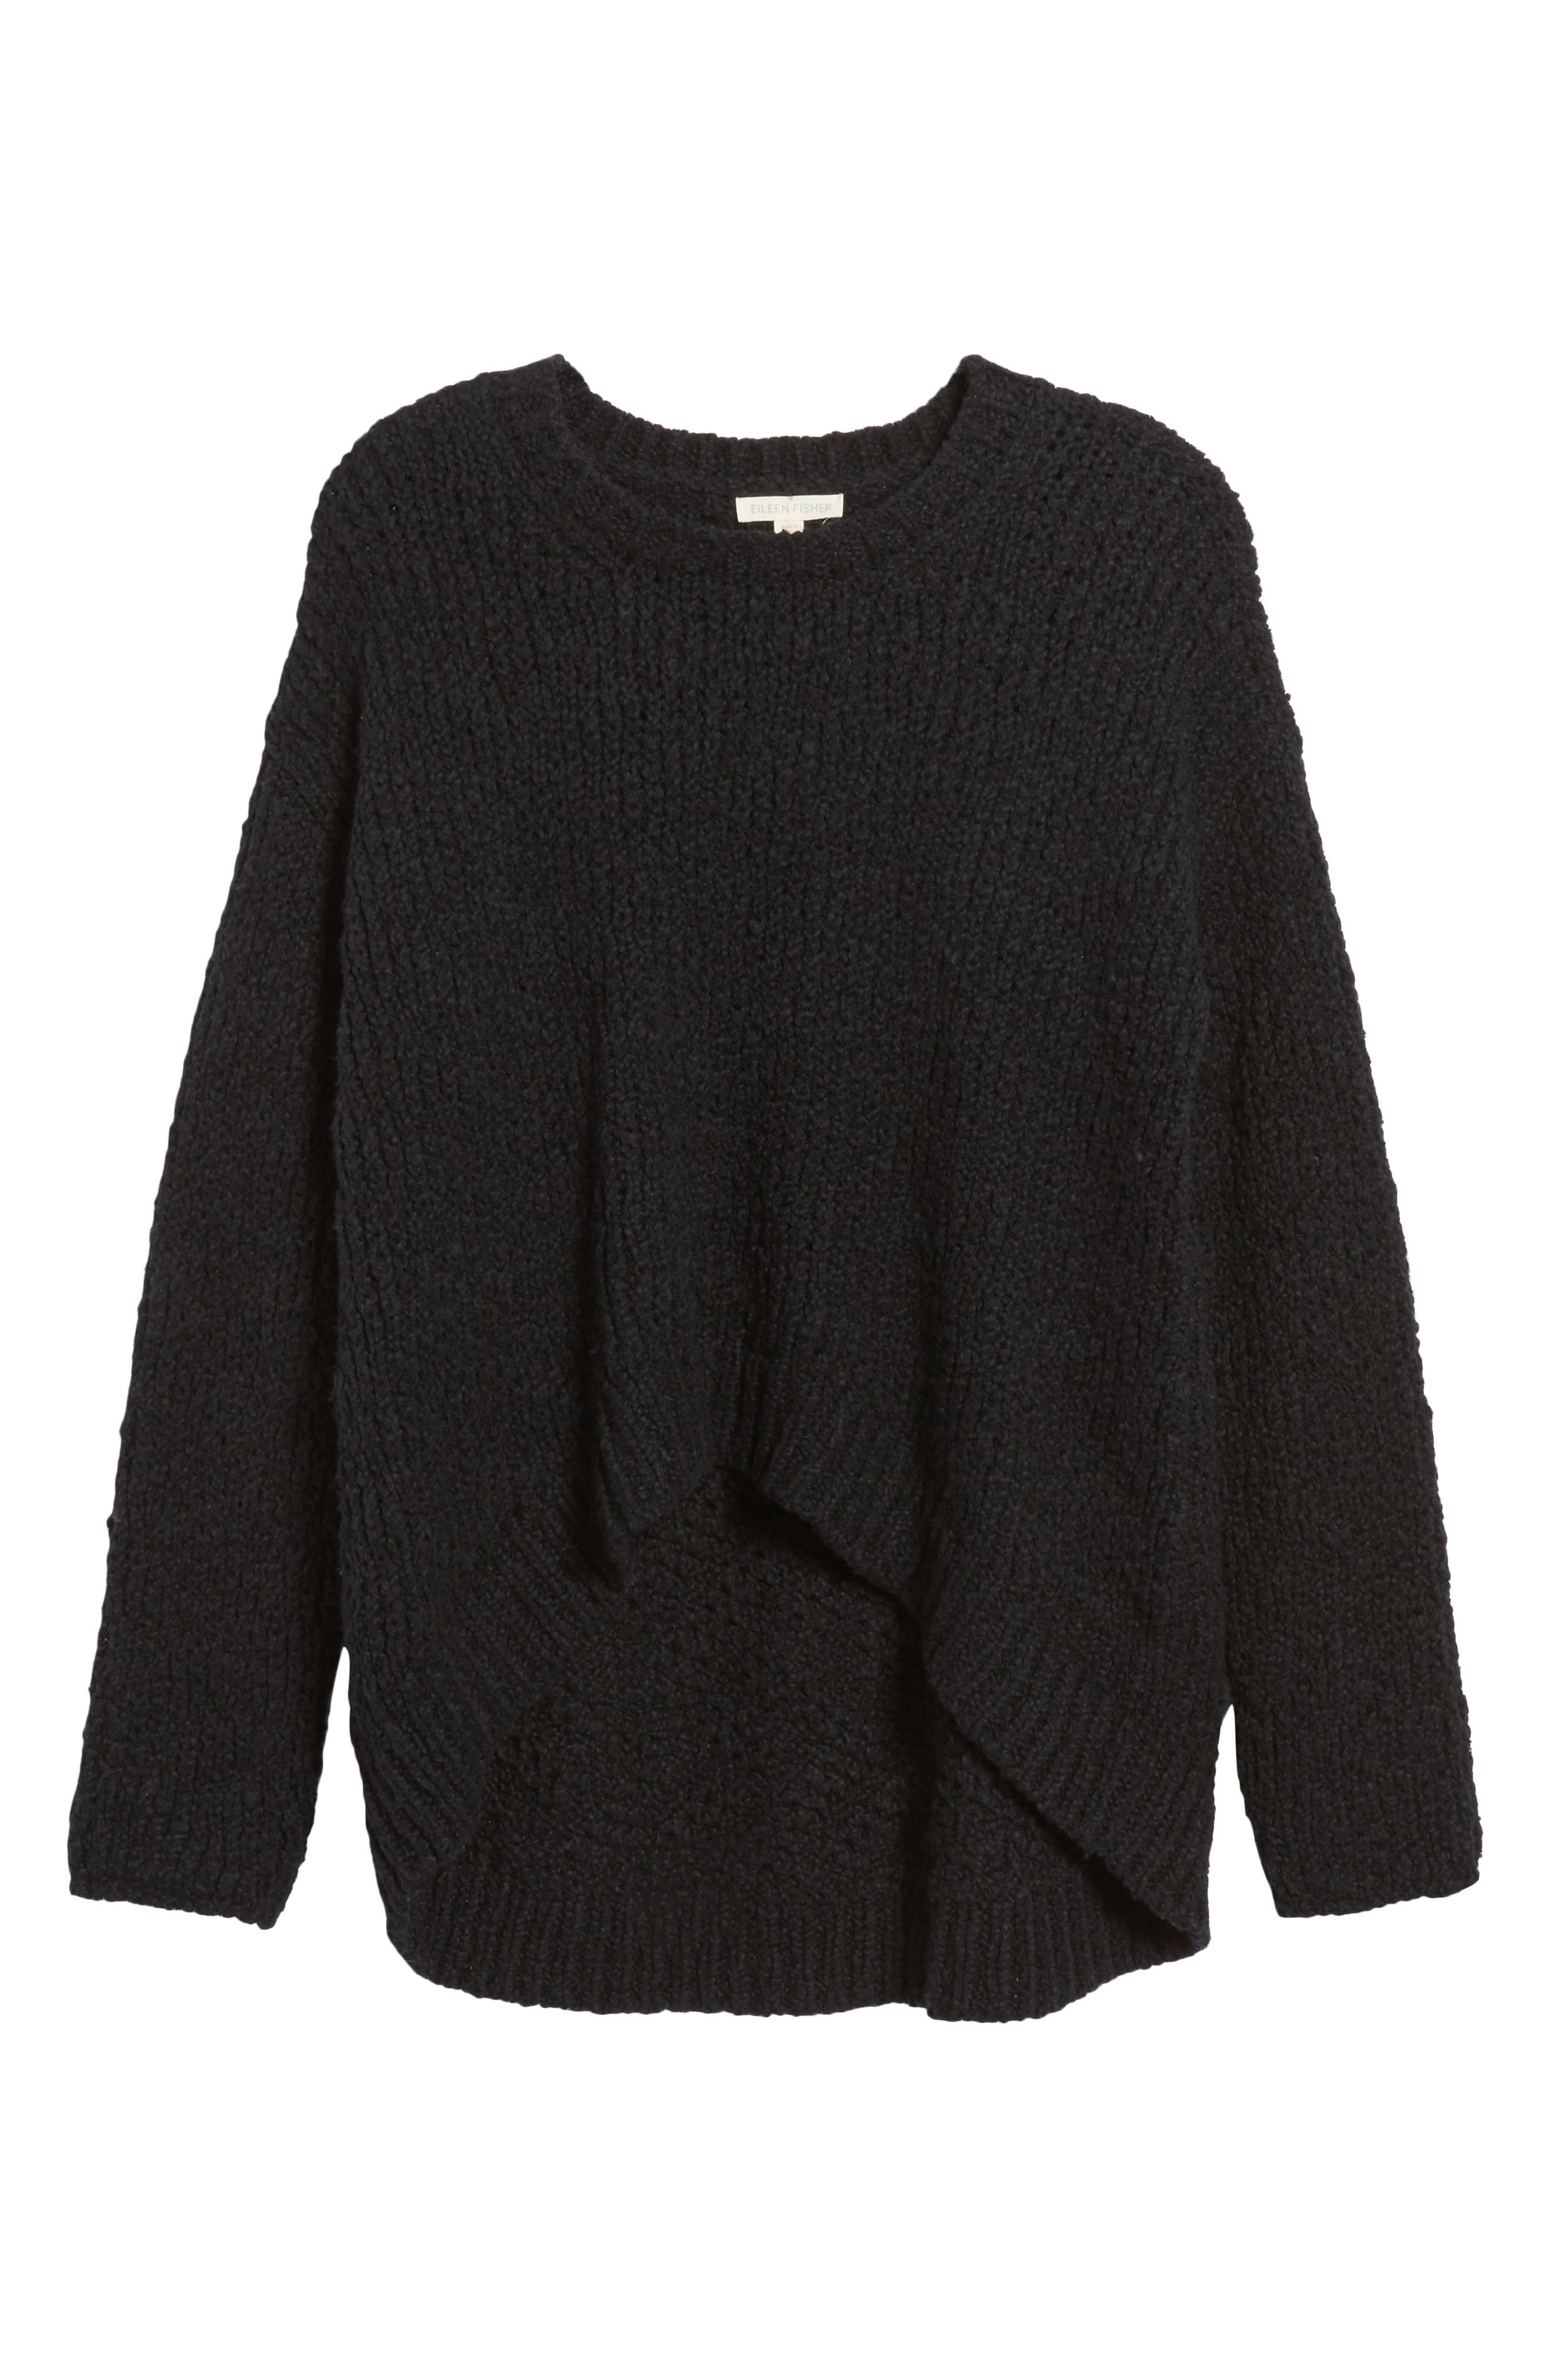 High/Low Organic Cotton Sweater,                             Alternate thumbnail 6, color,                             Black